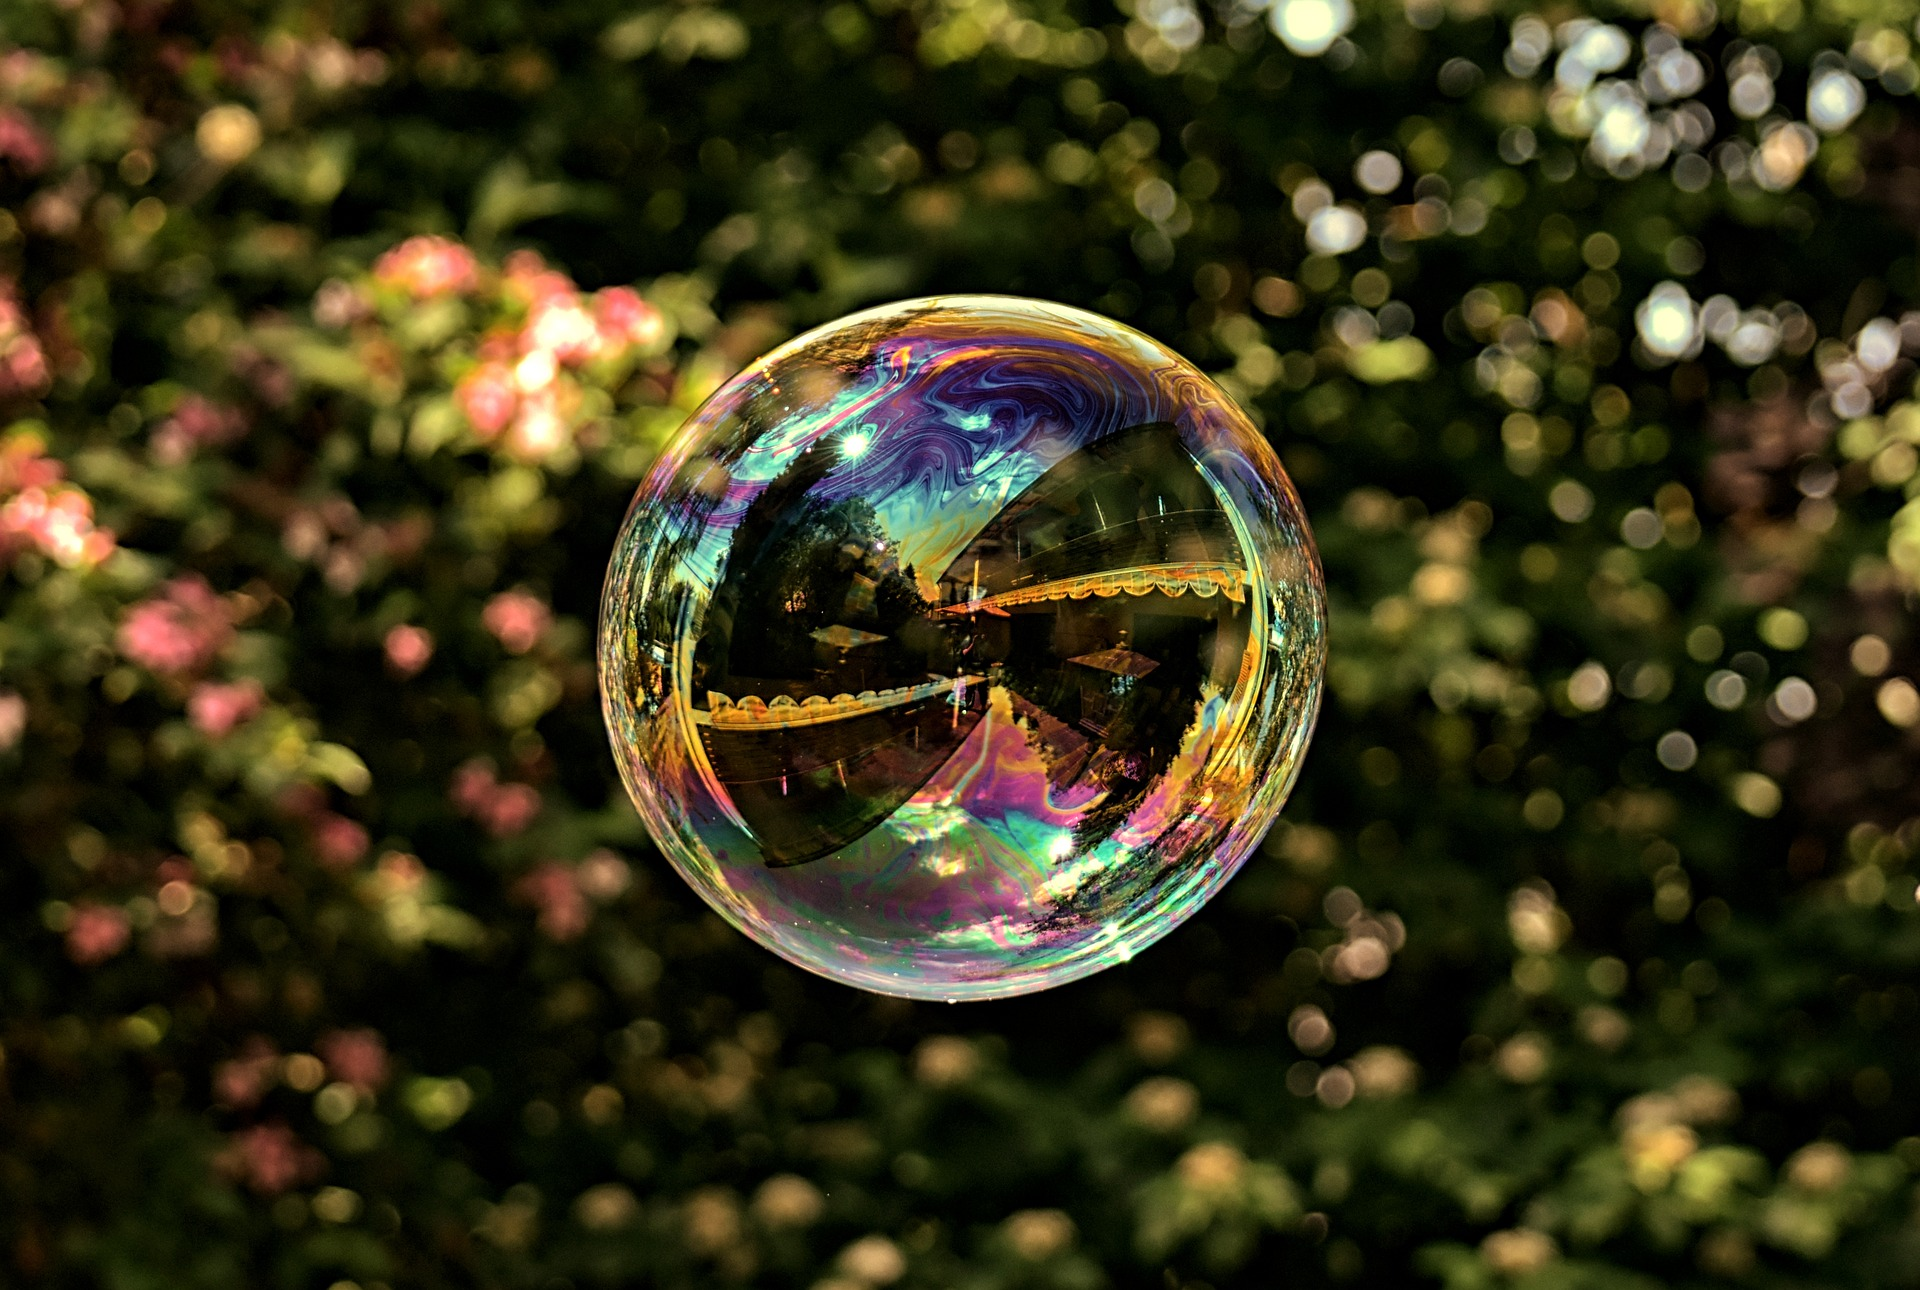 soap-bubble-3576085_1920.jpg